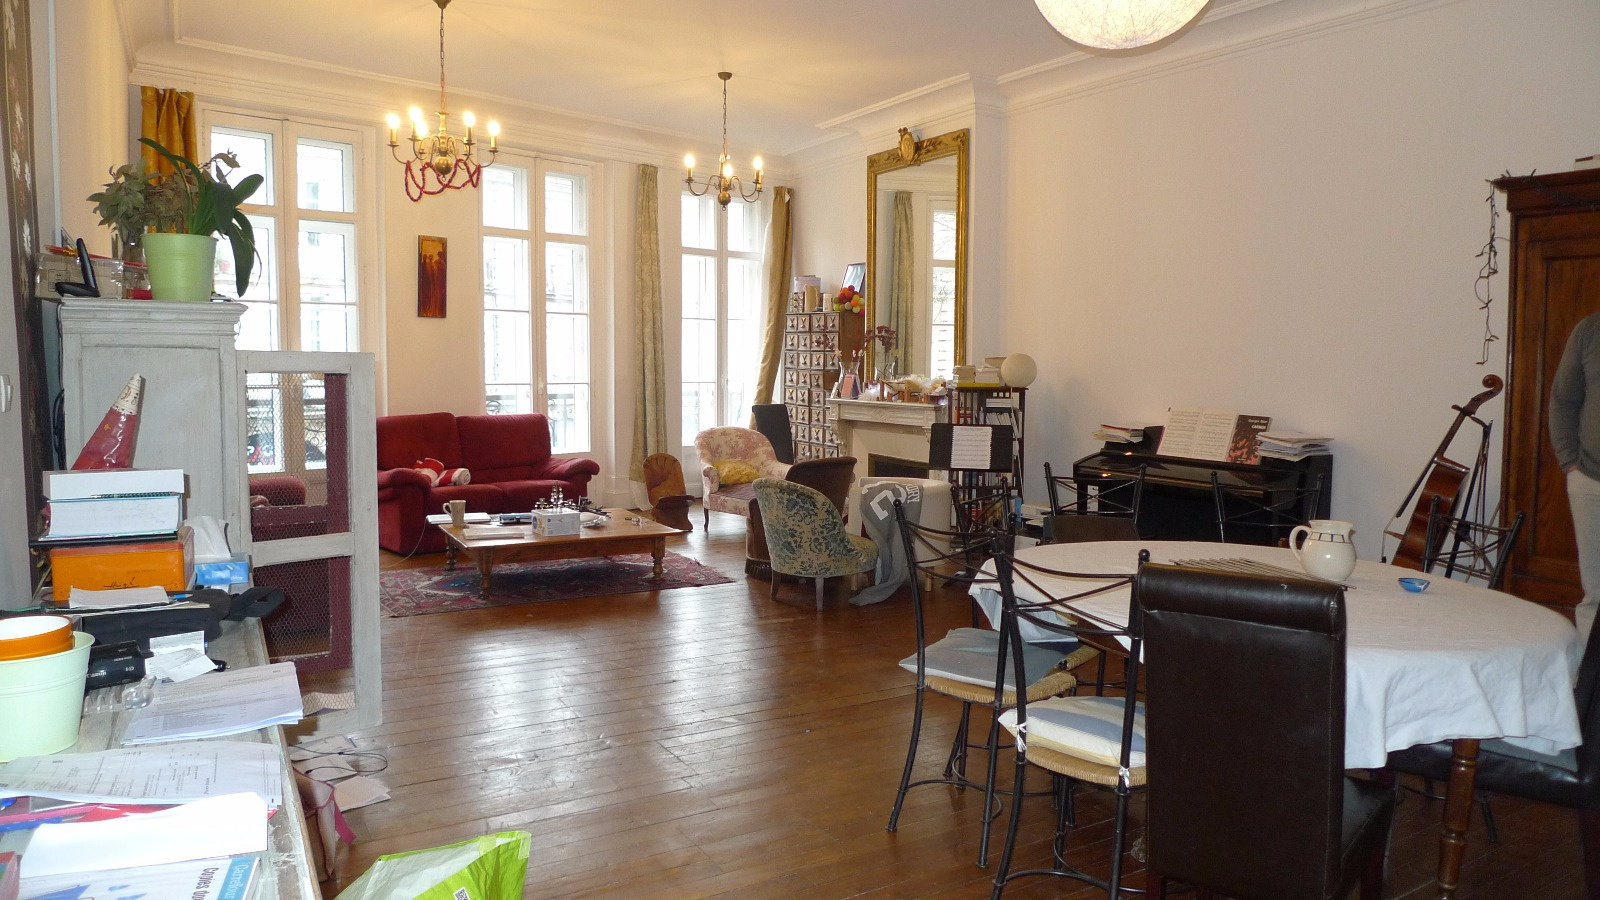 J 39 habite en ville l 39 immobilier bordeaux saint pierre for Immobilier a bordeaux